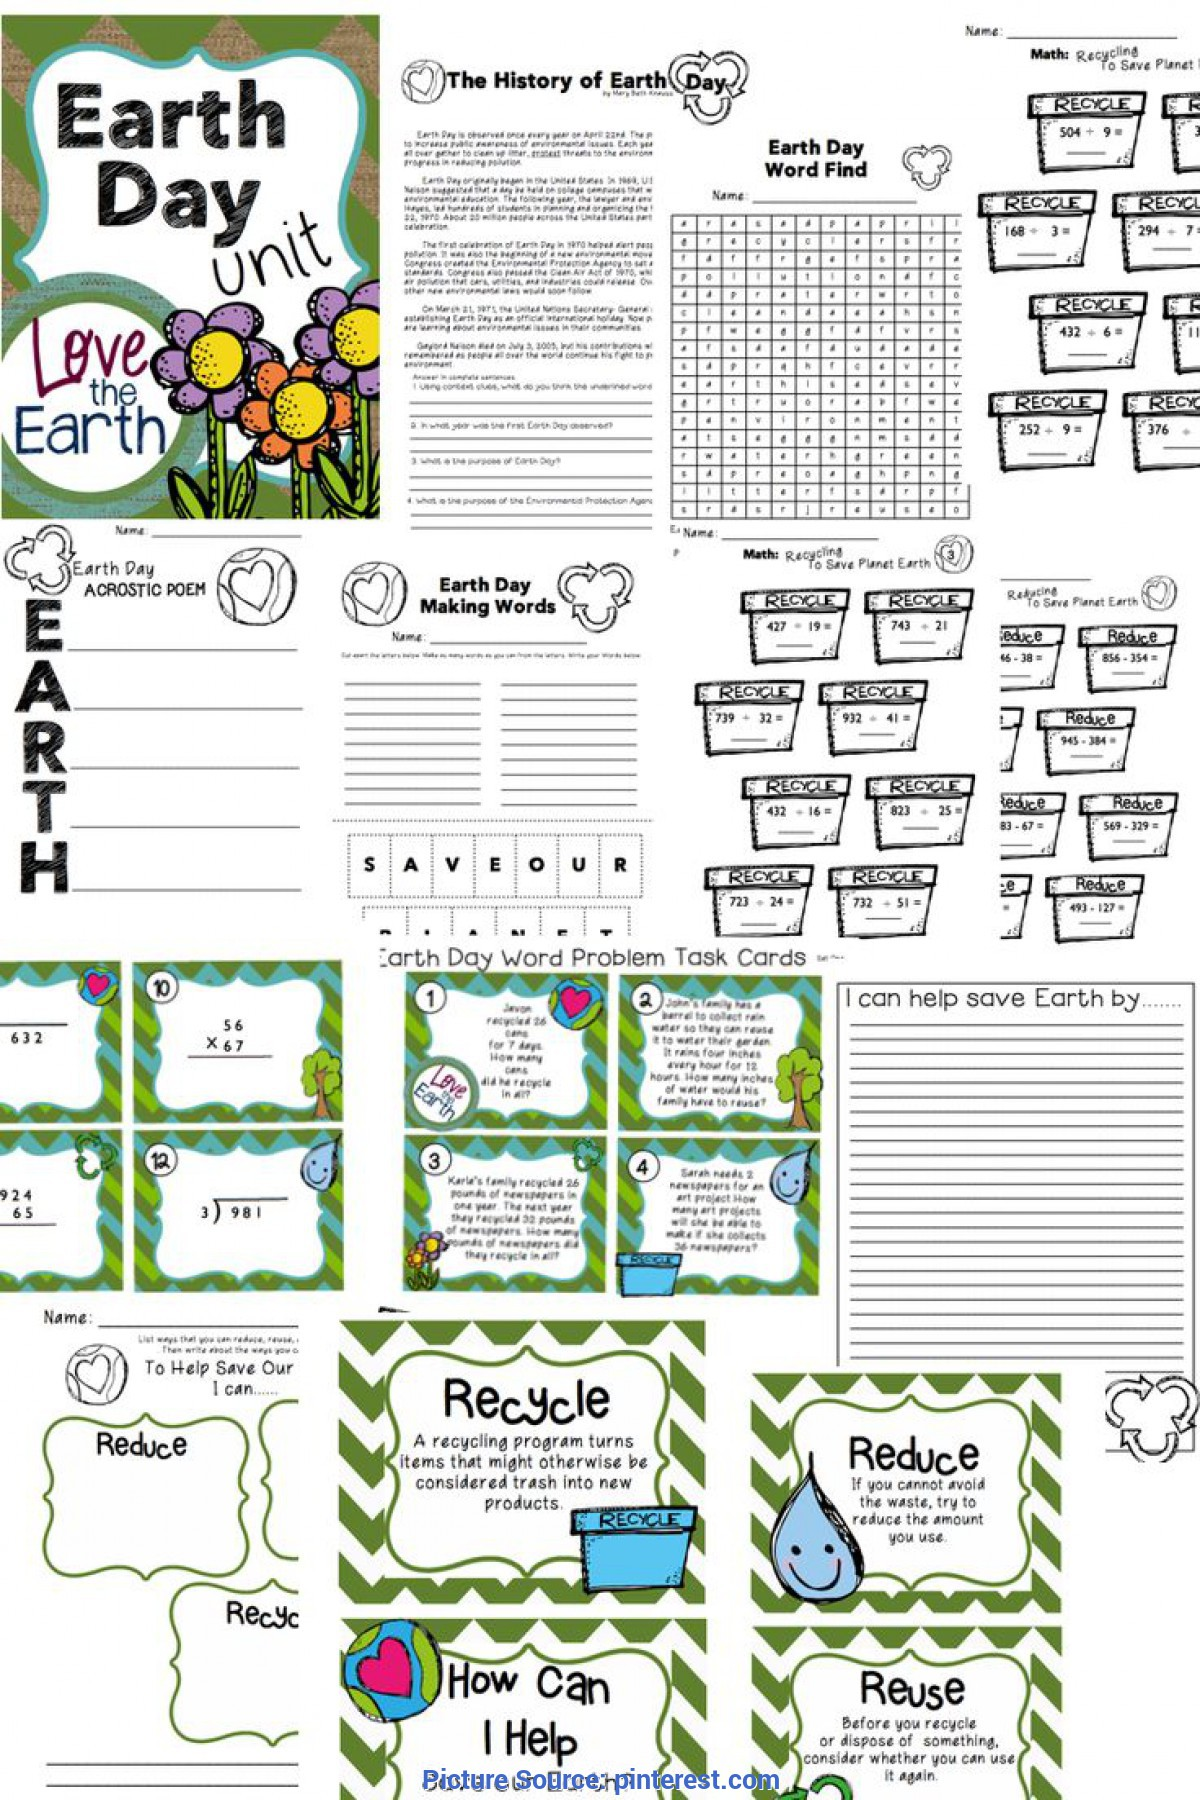 Best 3Rd Grade Lesson Plans On Recycling 148 Best 3Rd Grade Lesson Plans Images On Pinterest | Classroo